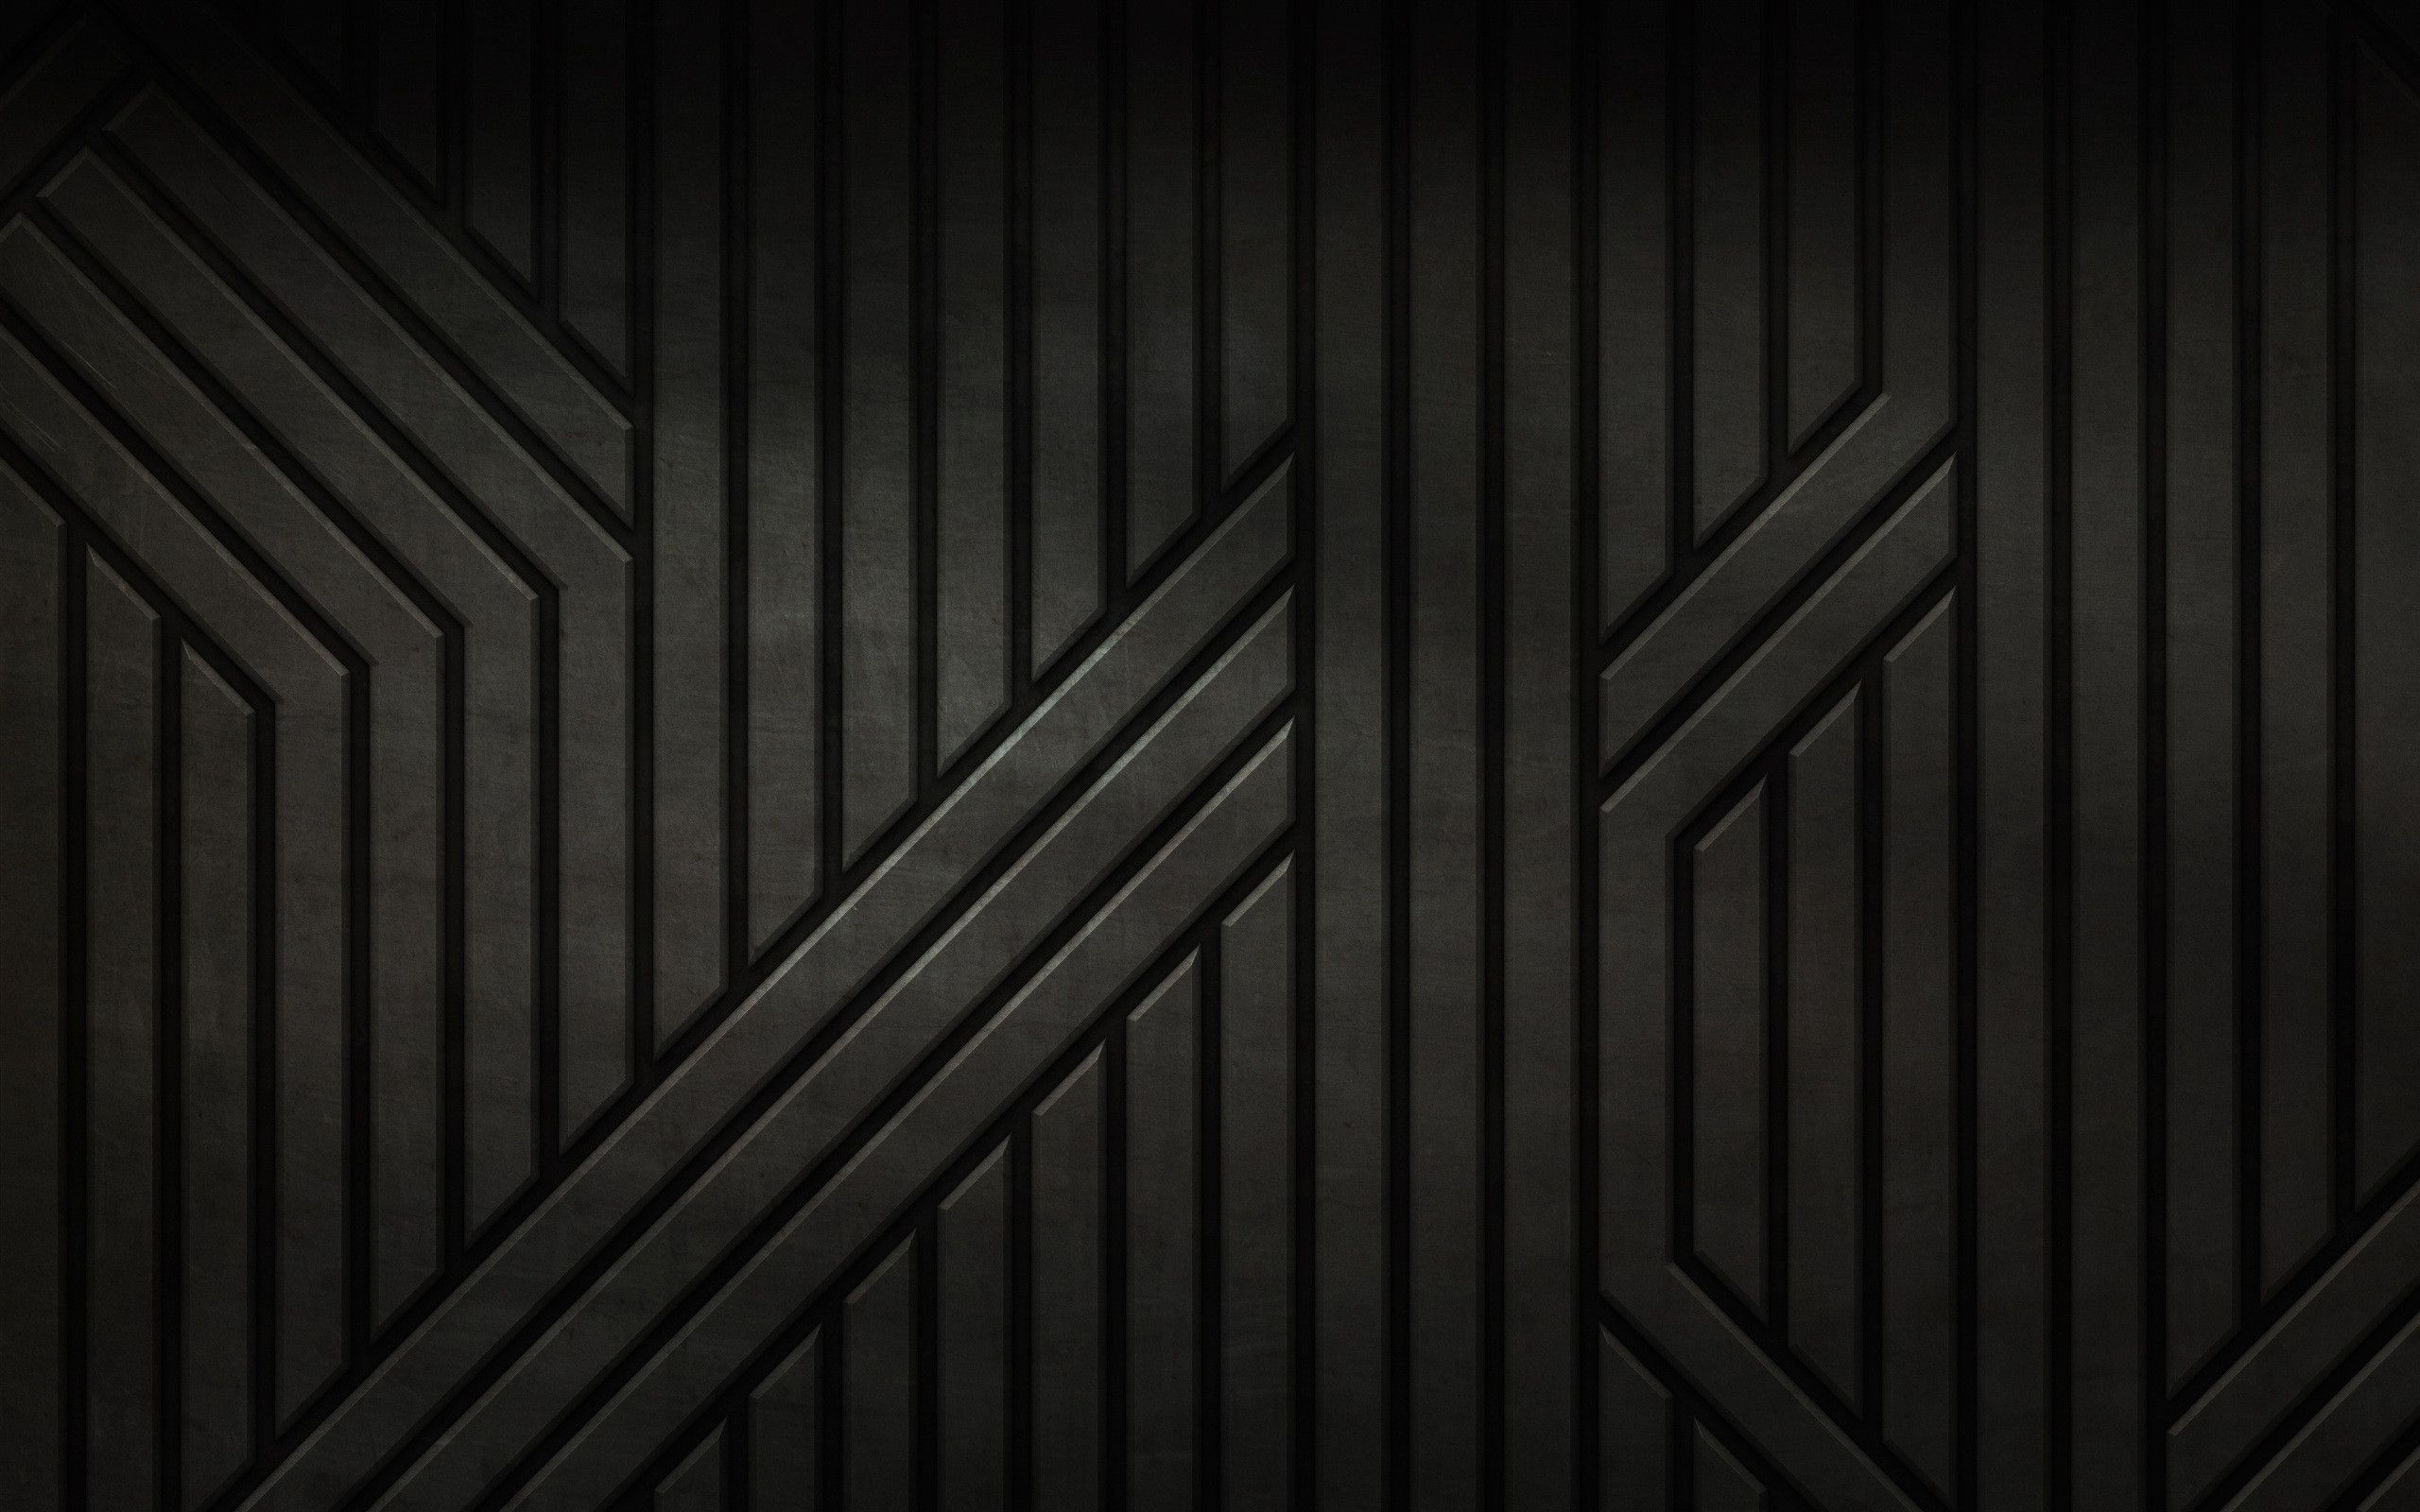 Futuristic Textures Wallpapers - Top Free Futuristic Textures Backgrounds -  WallpaperAccess